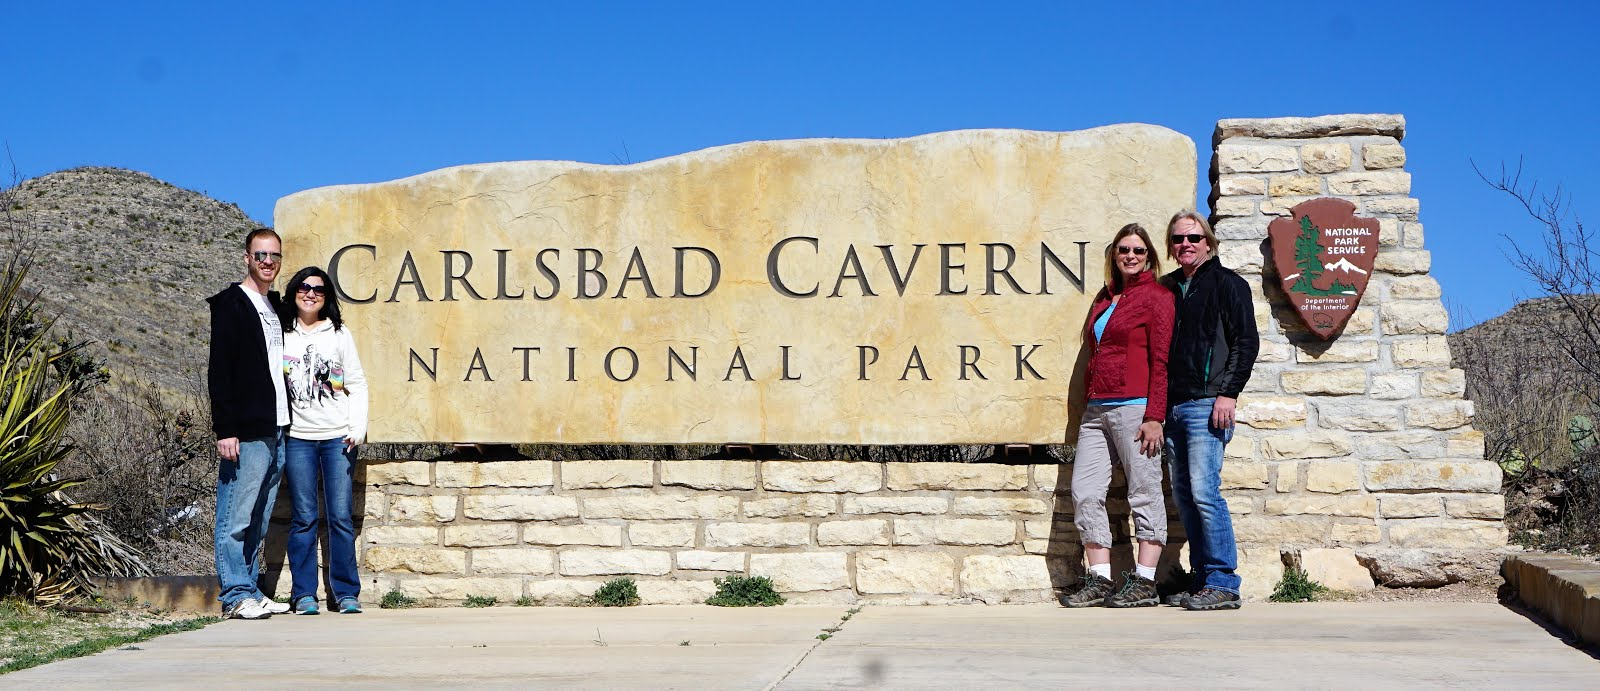 our trip to carlsbad caverns